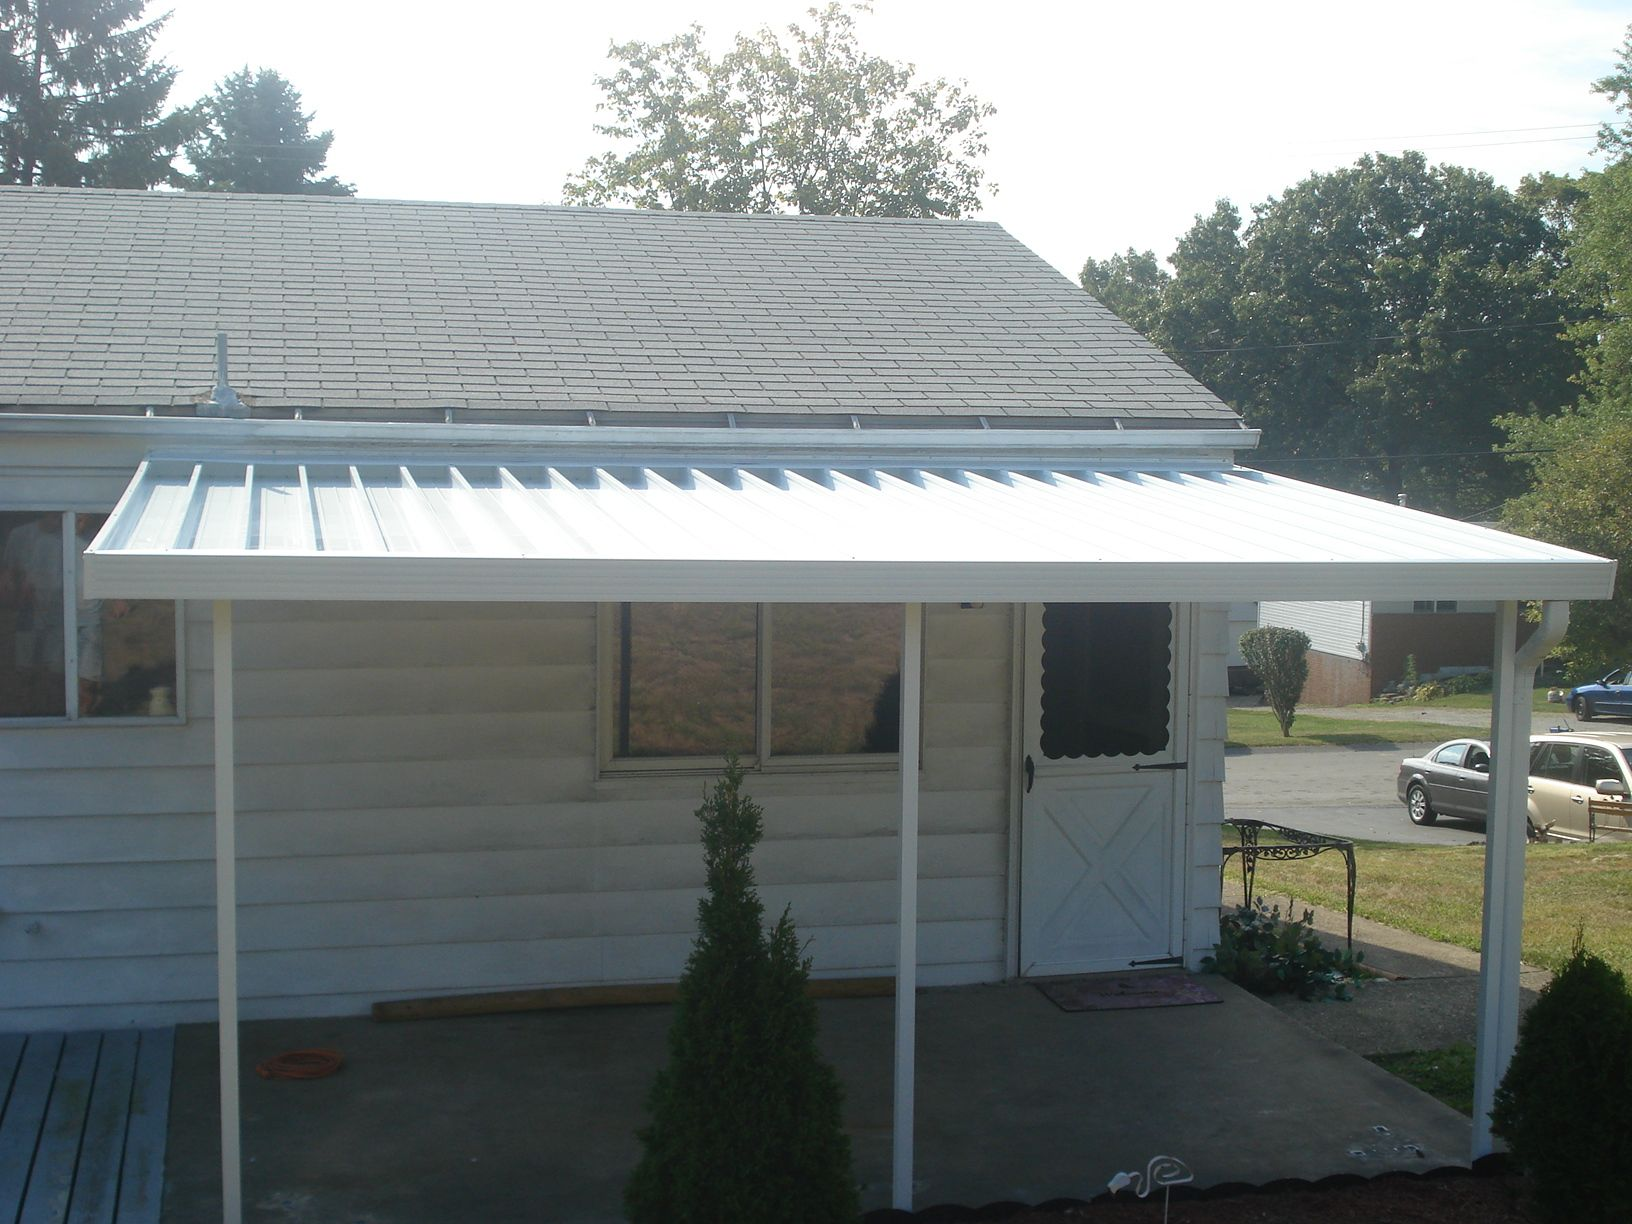 Crest 700 Flat Pan Aluminum Awning In White Aluminum Awnings